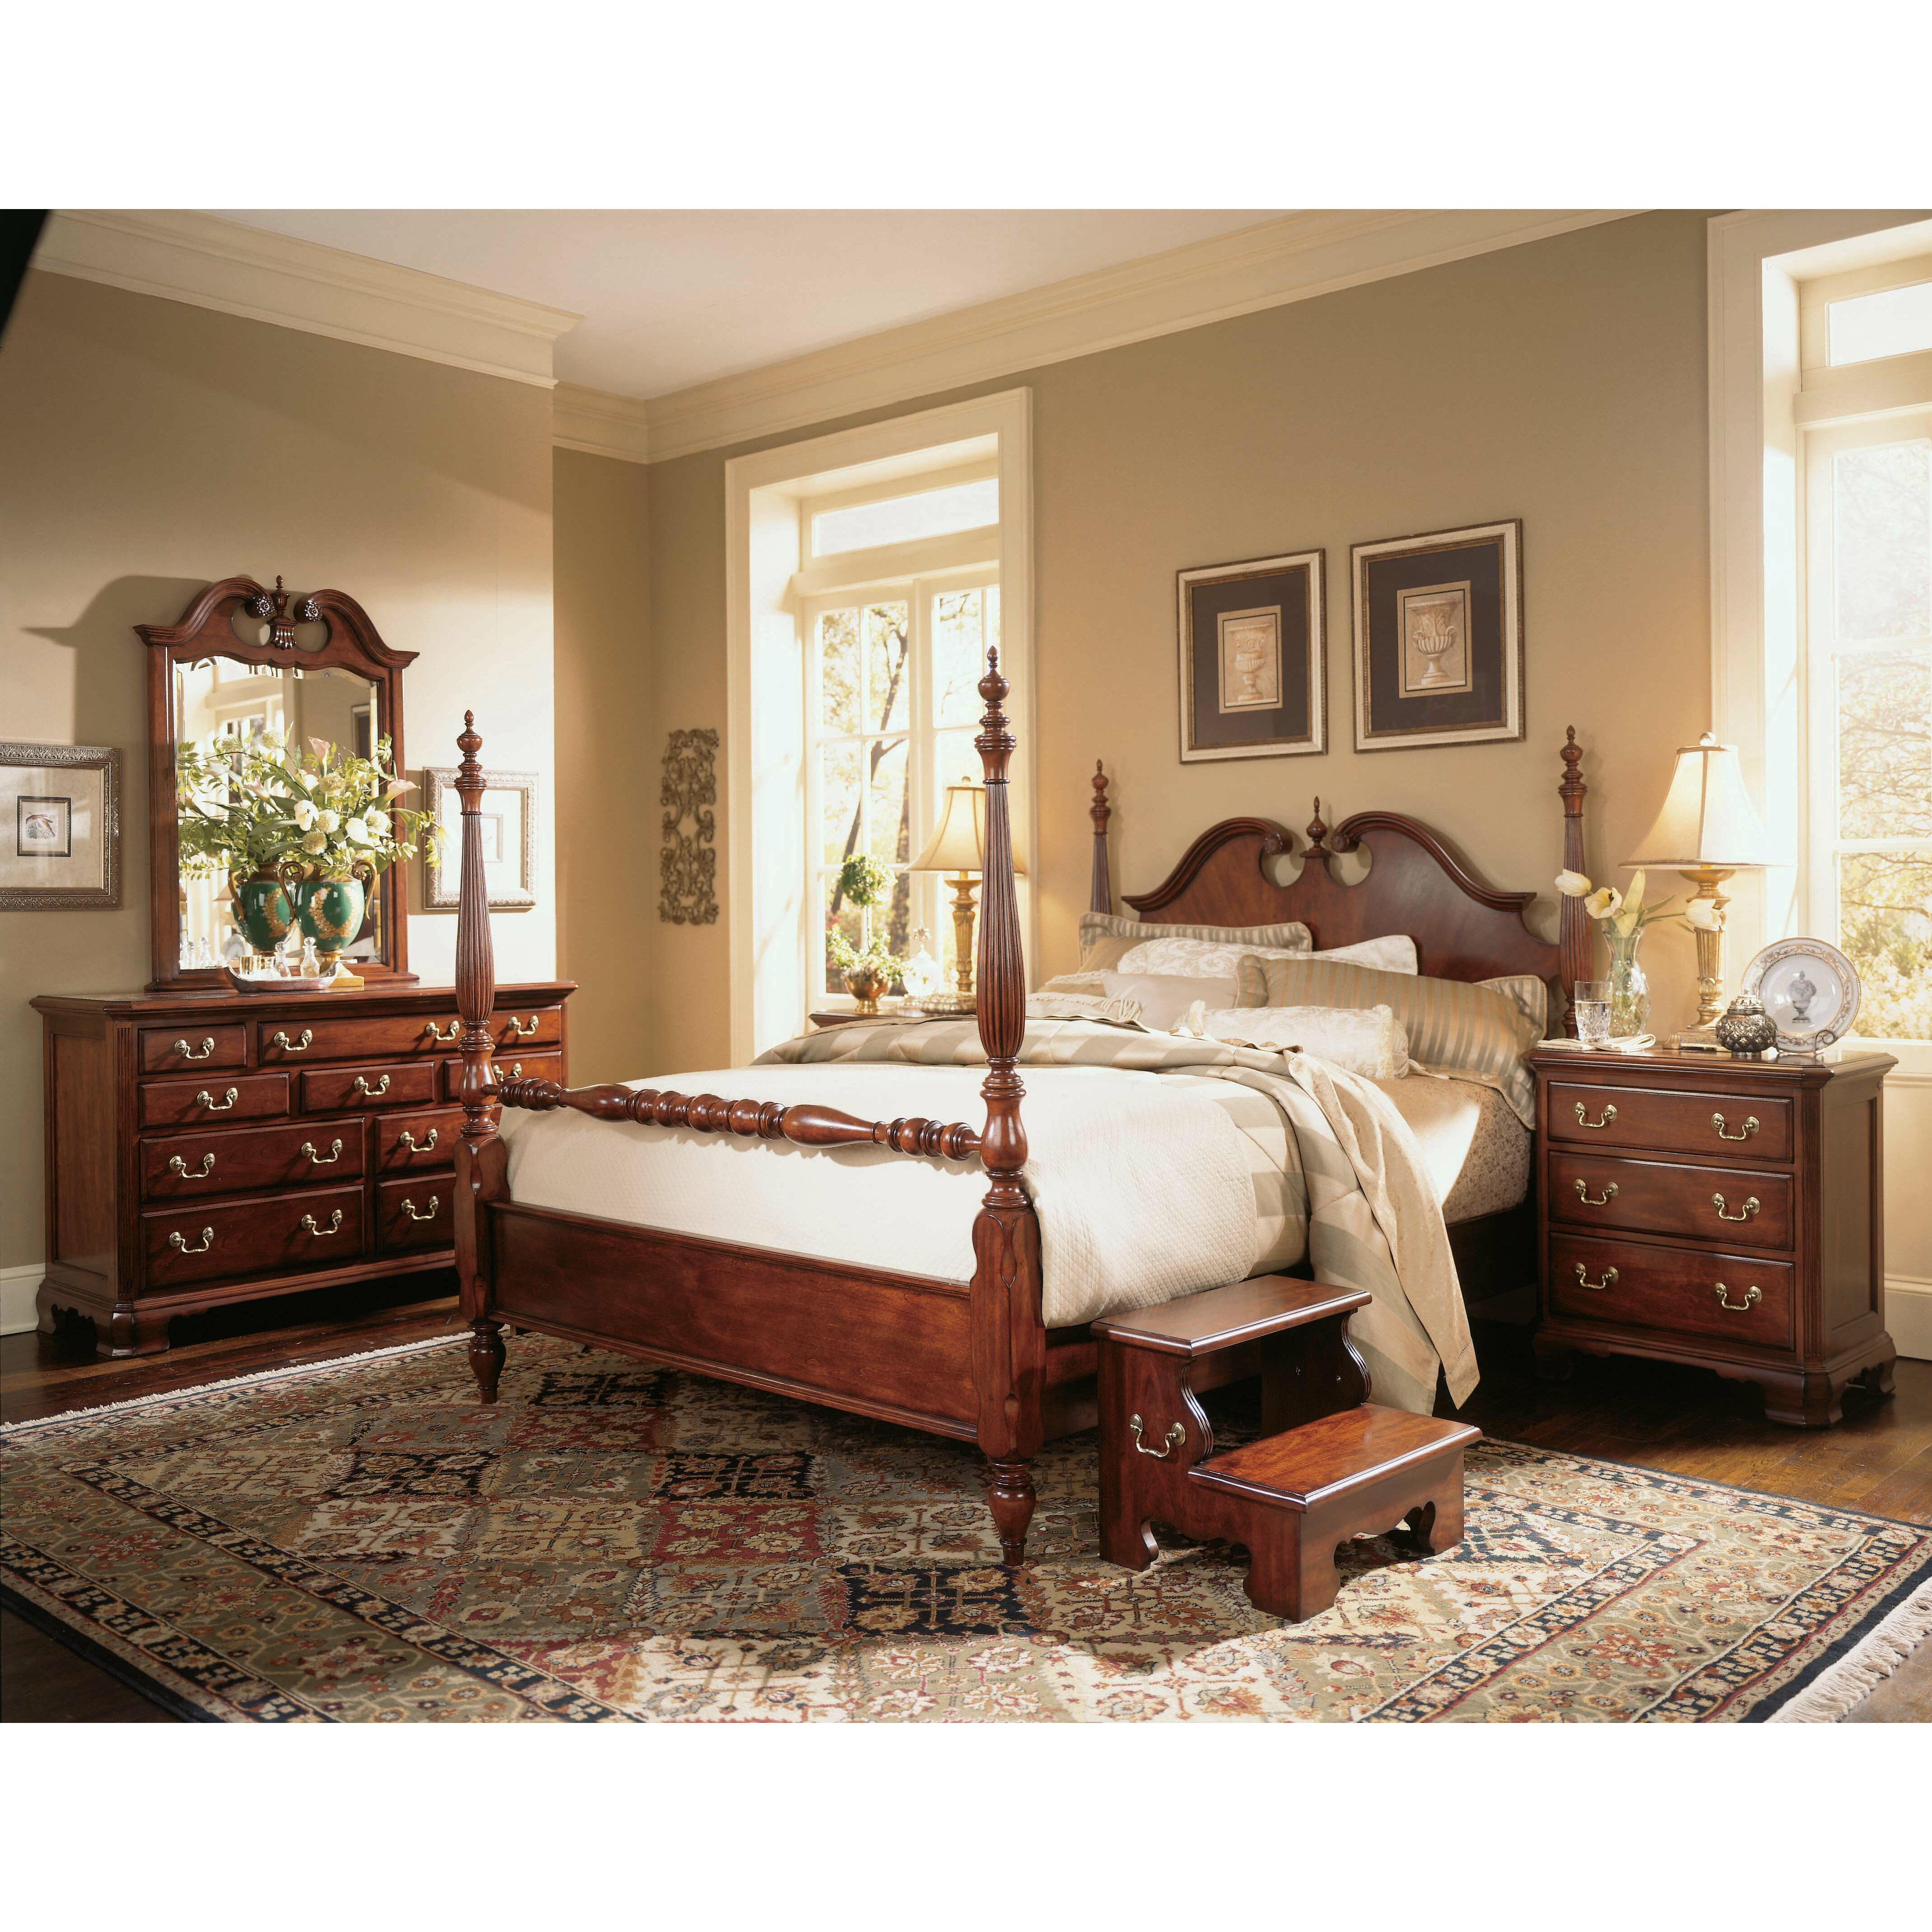 Together With Iteminformation On Bedroom Furniture Beaumont Tx